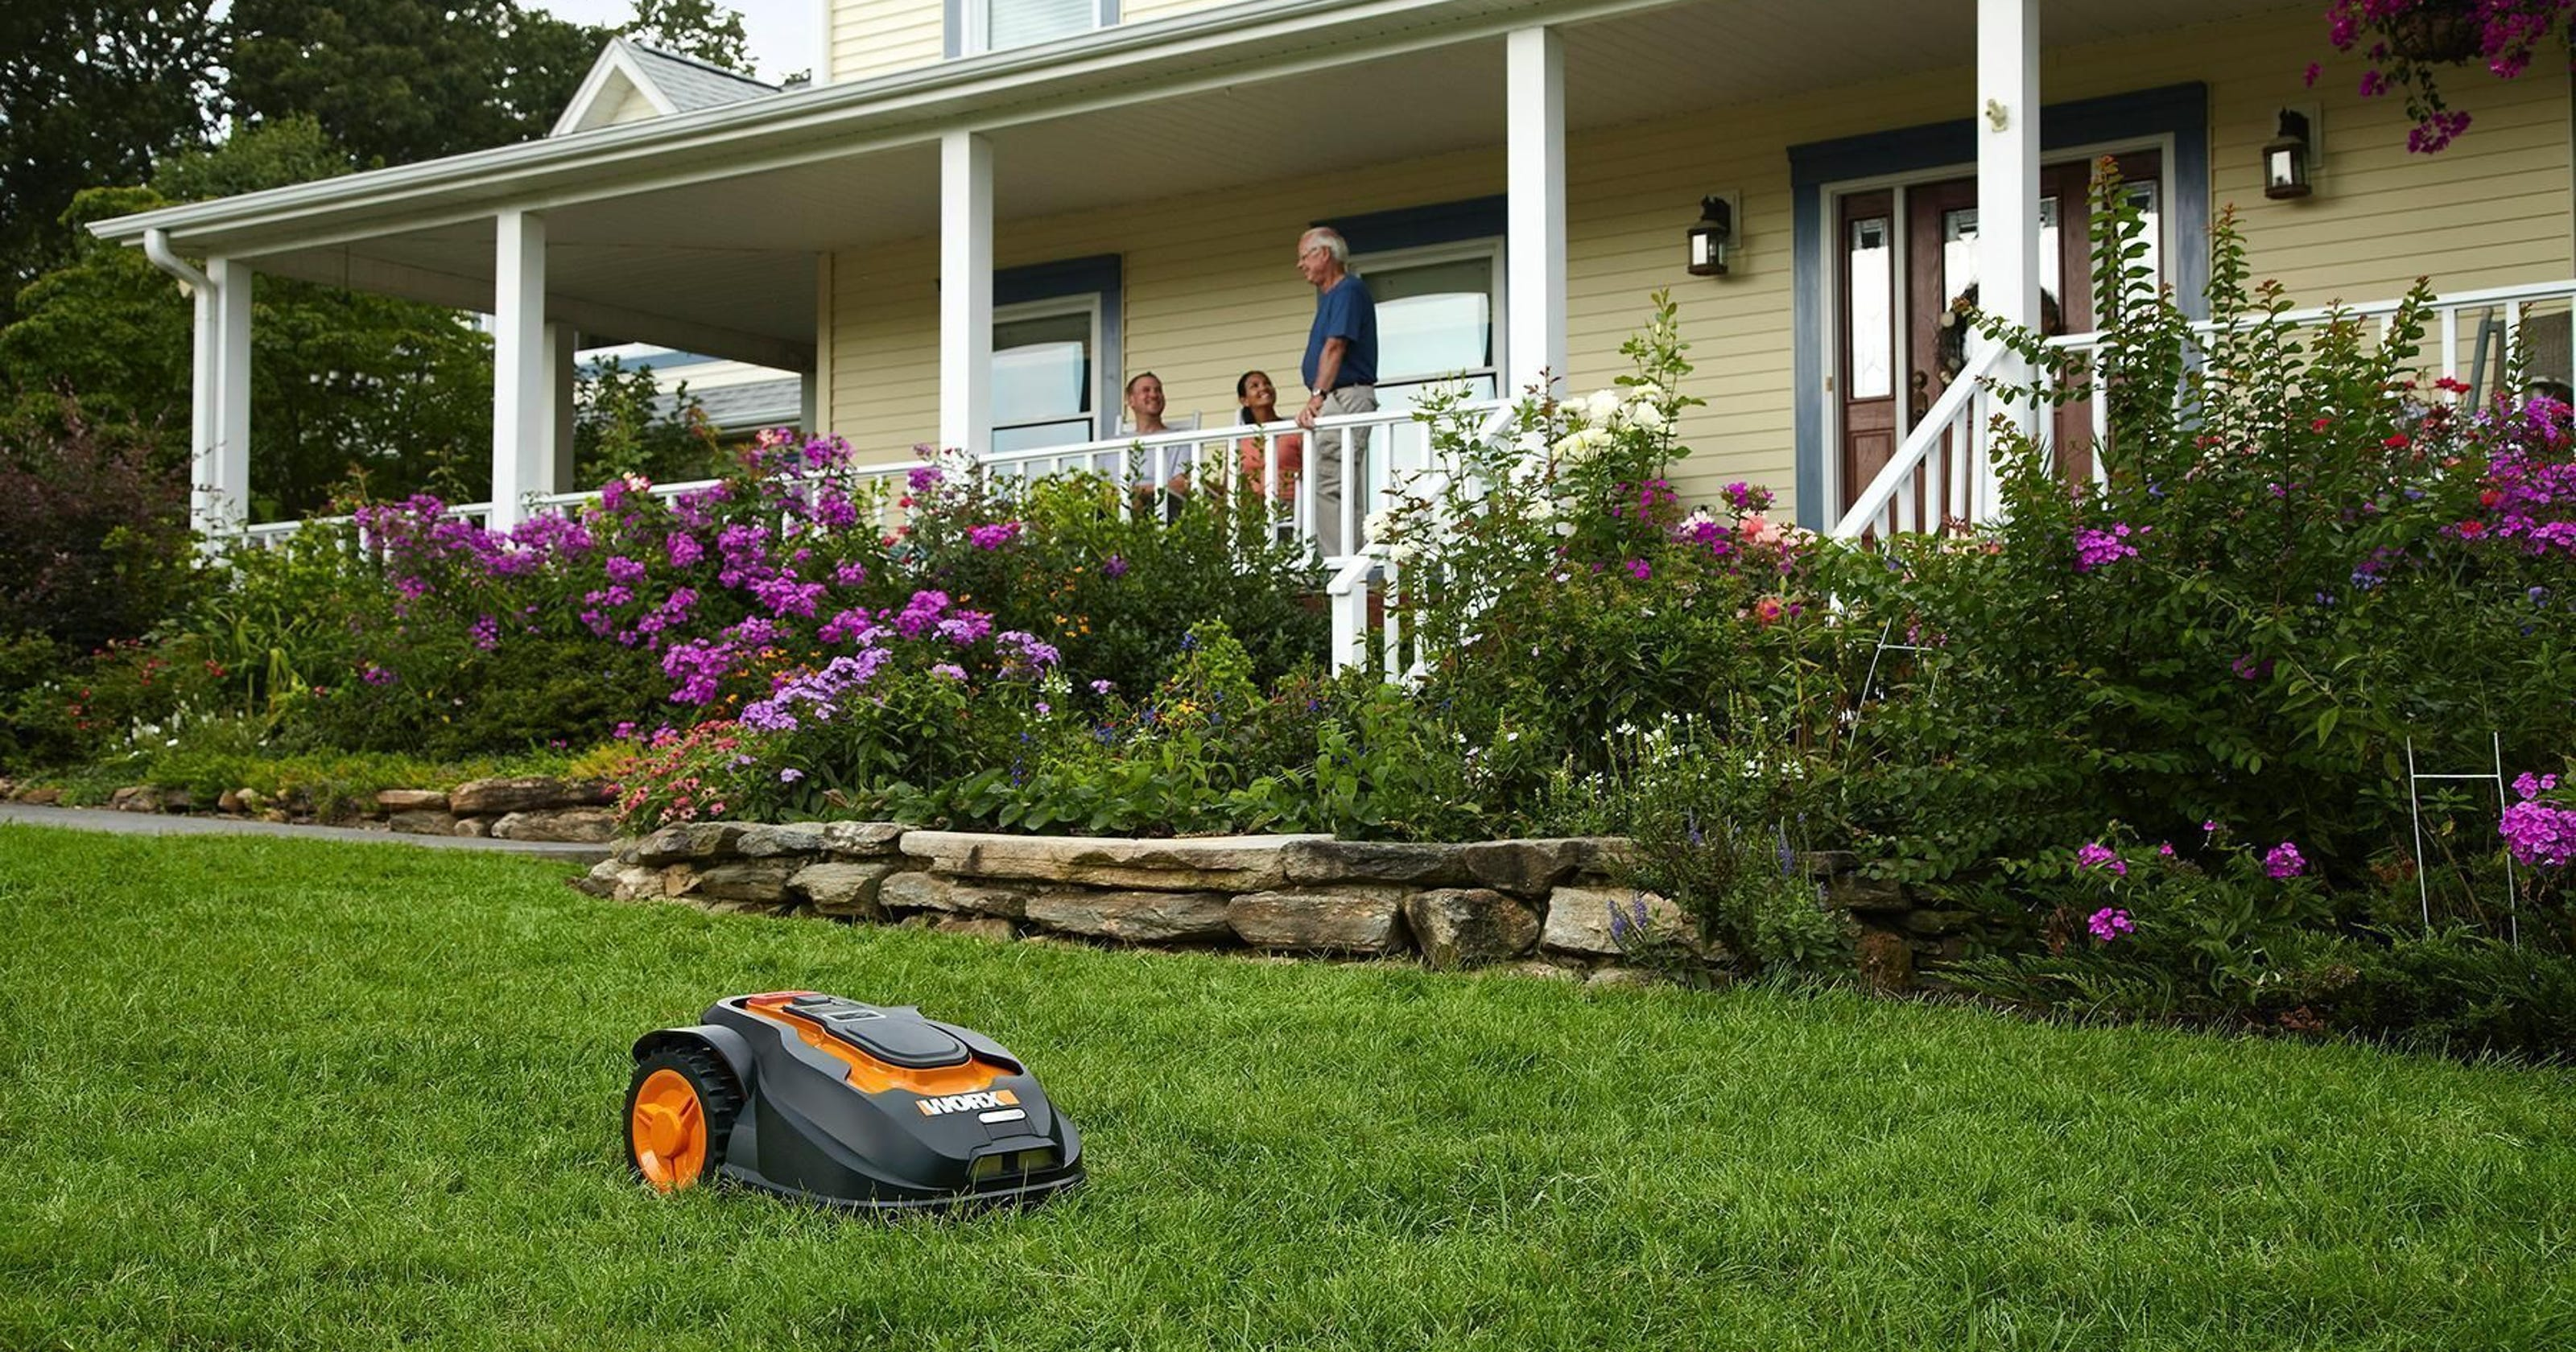 10 gadgets that will do gardening and yard work for you